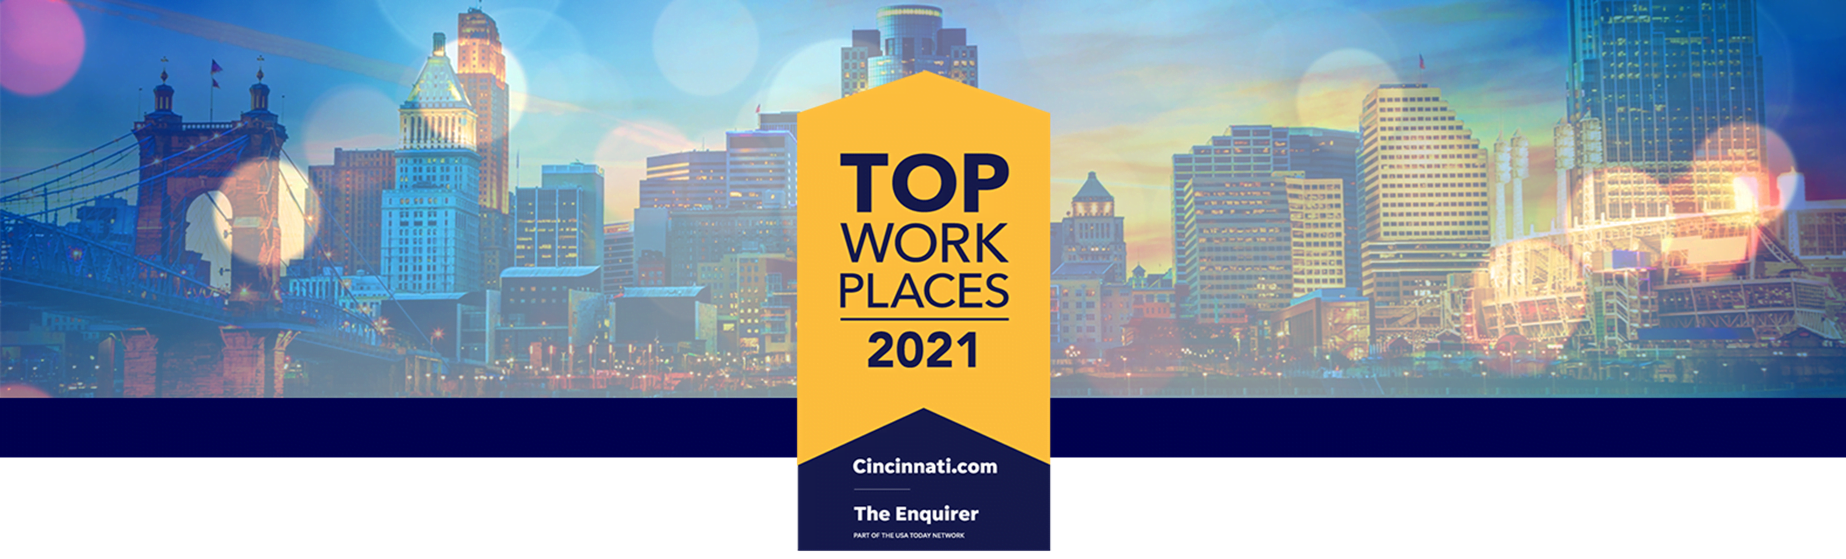 Enervise Named Top Workplace in 2021